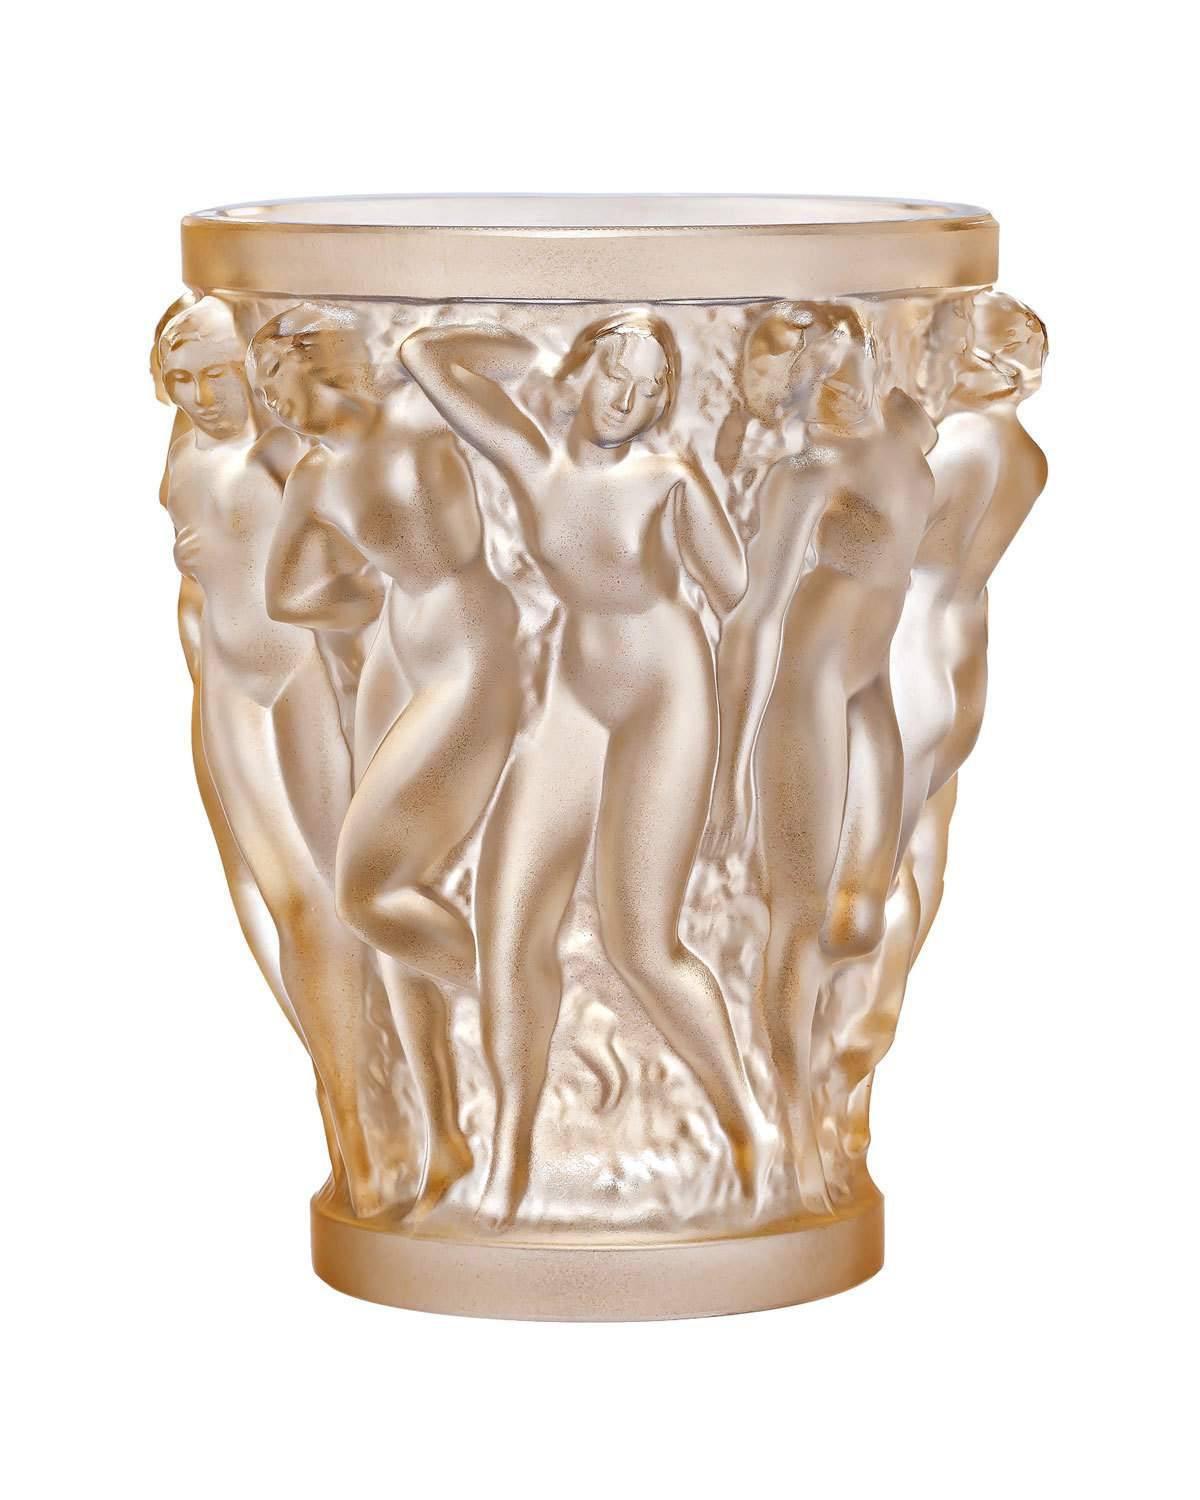 lalique vase bacchantes of lalique bacchantes small gold luster vase neiman marcus with bacchantes small gold luster vase